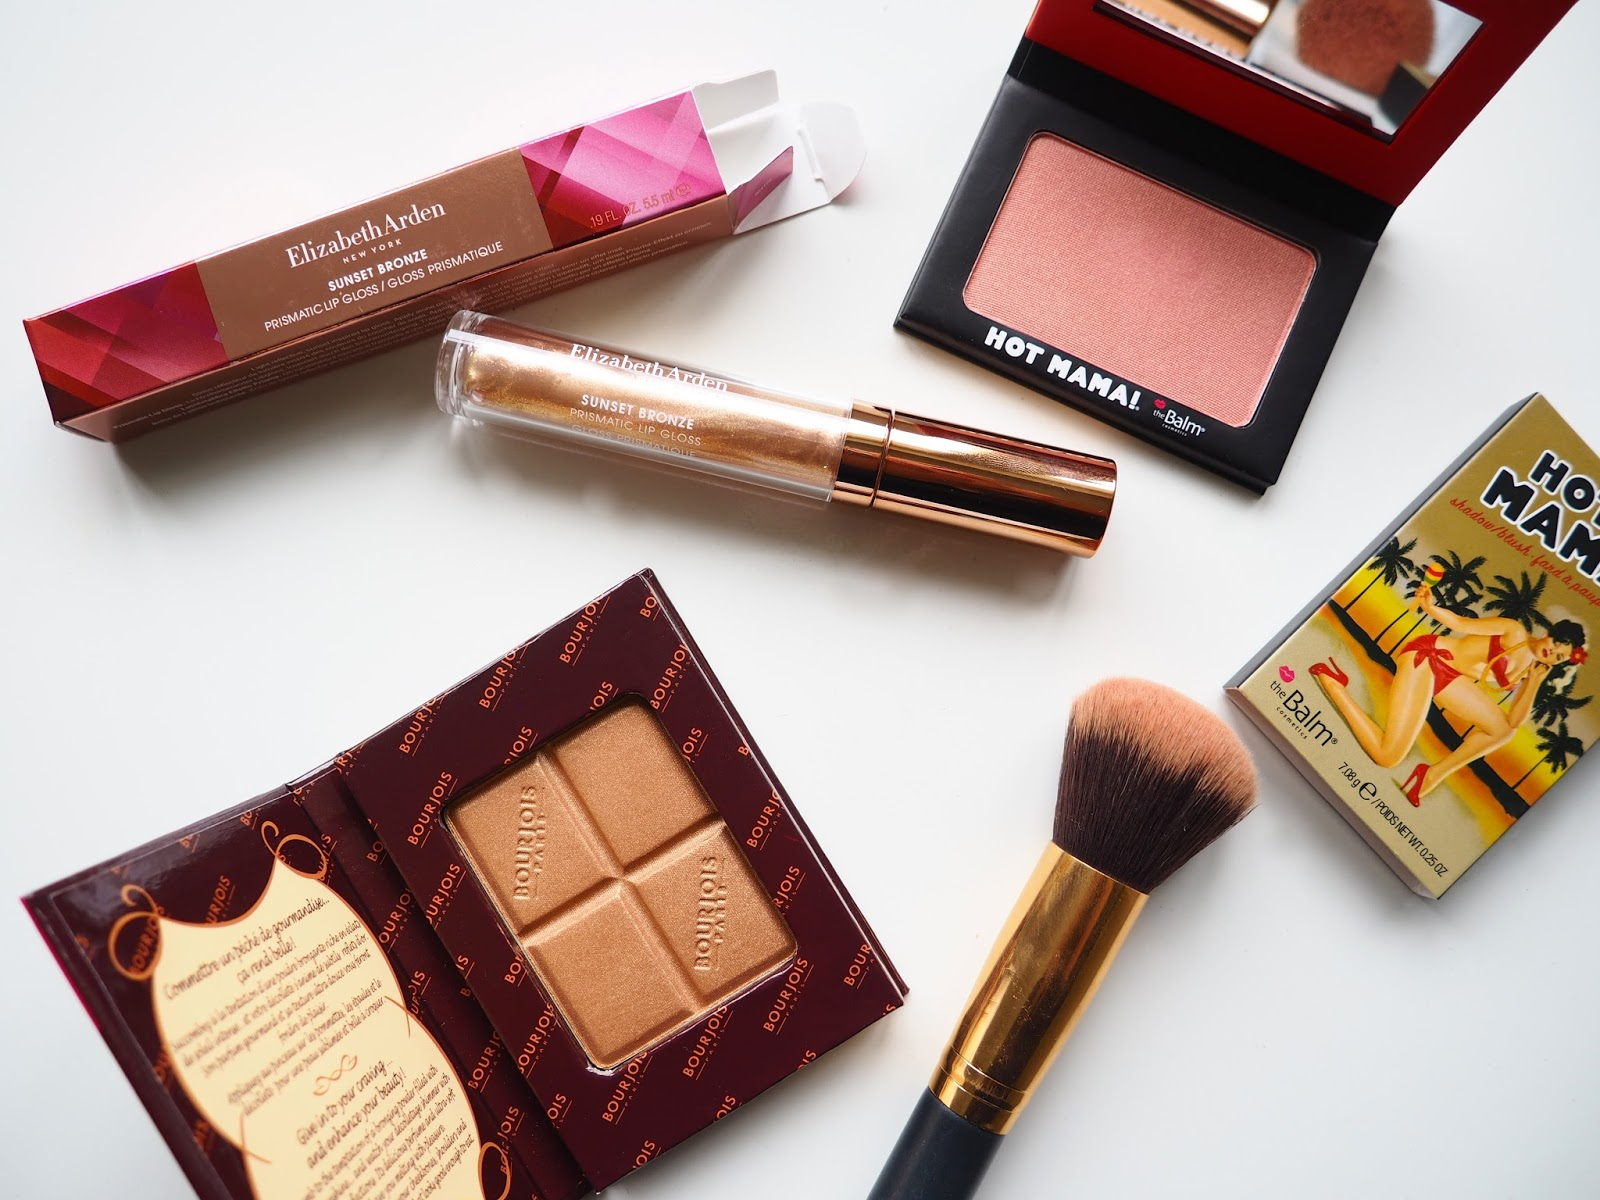 It's Cultured Holiday Essentials Makeup Cosmetics The Balm Elizabeth Arden and Bourjois